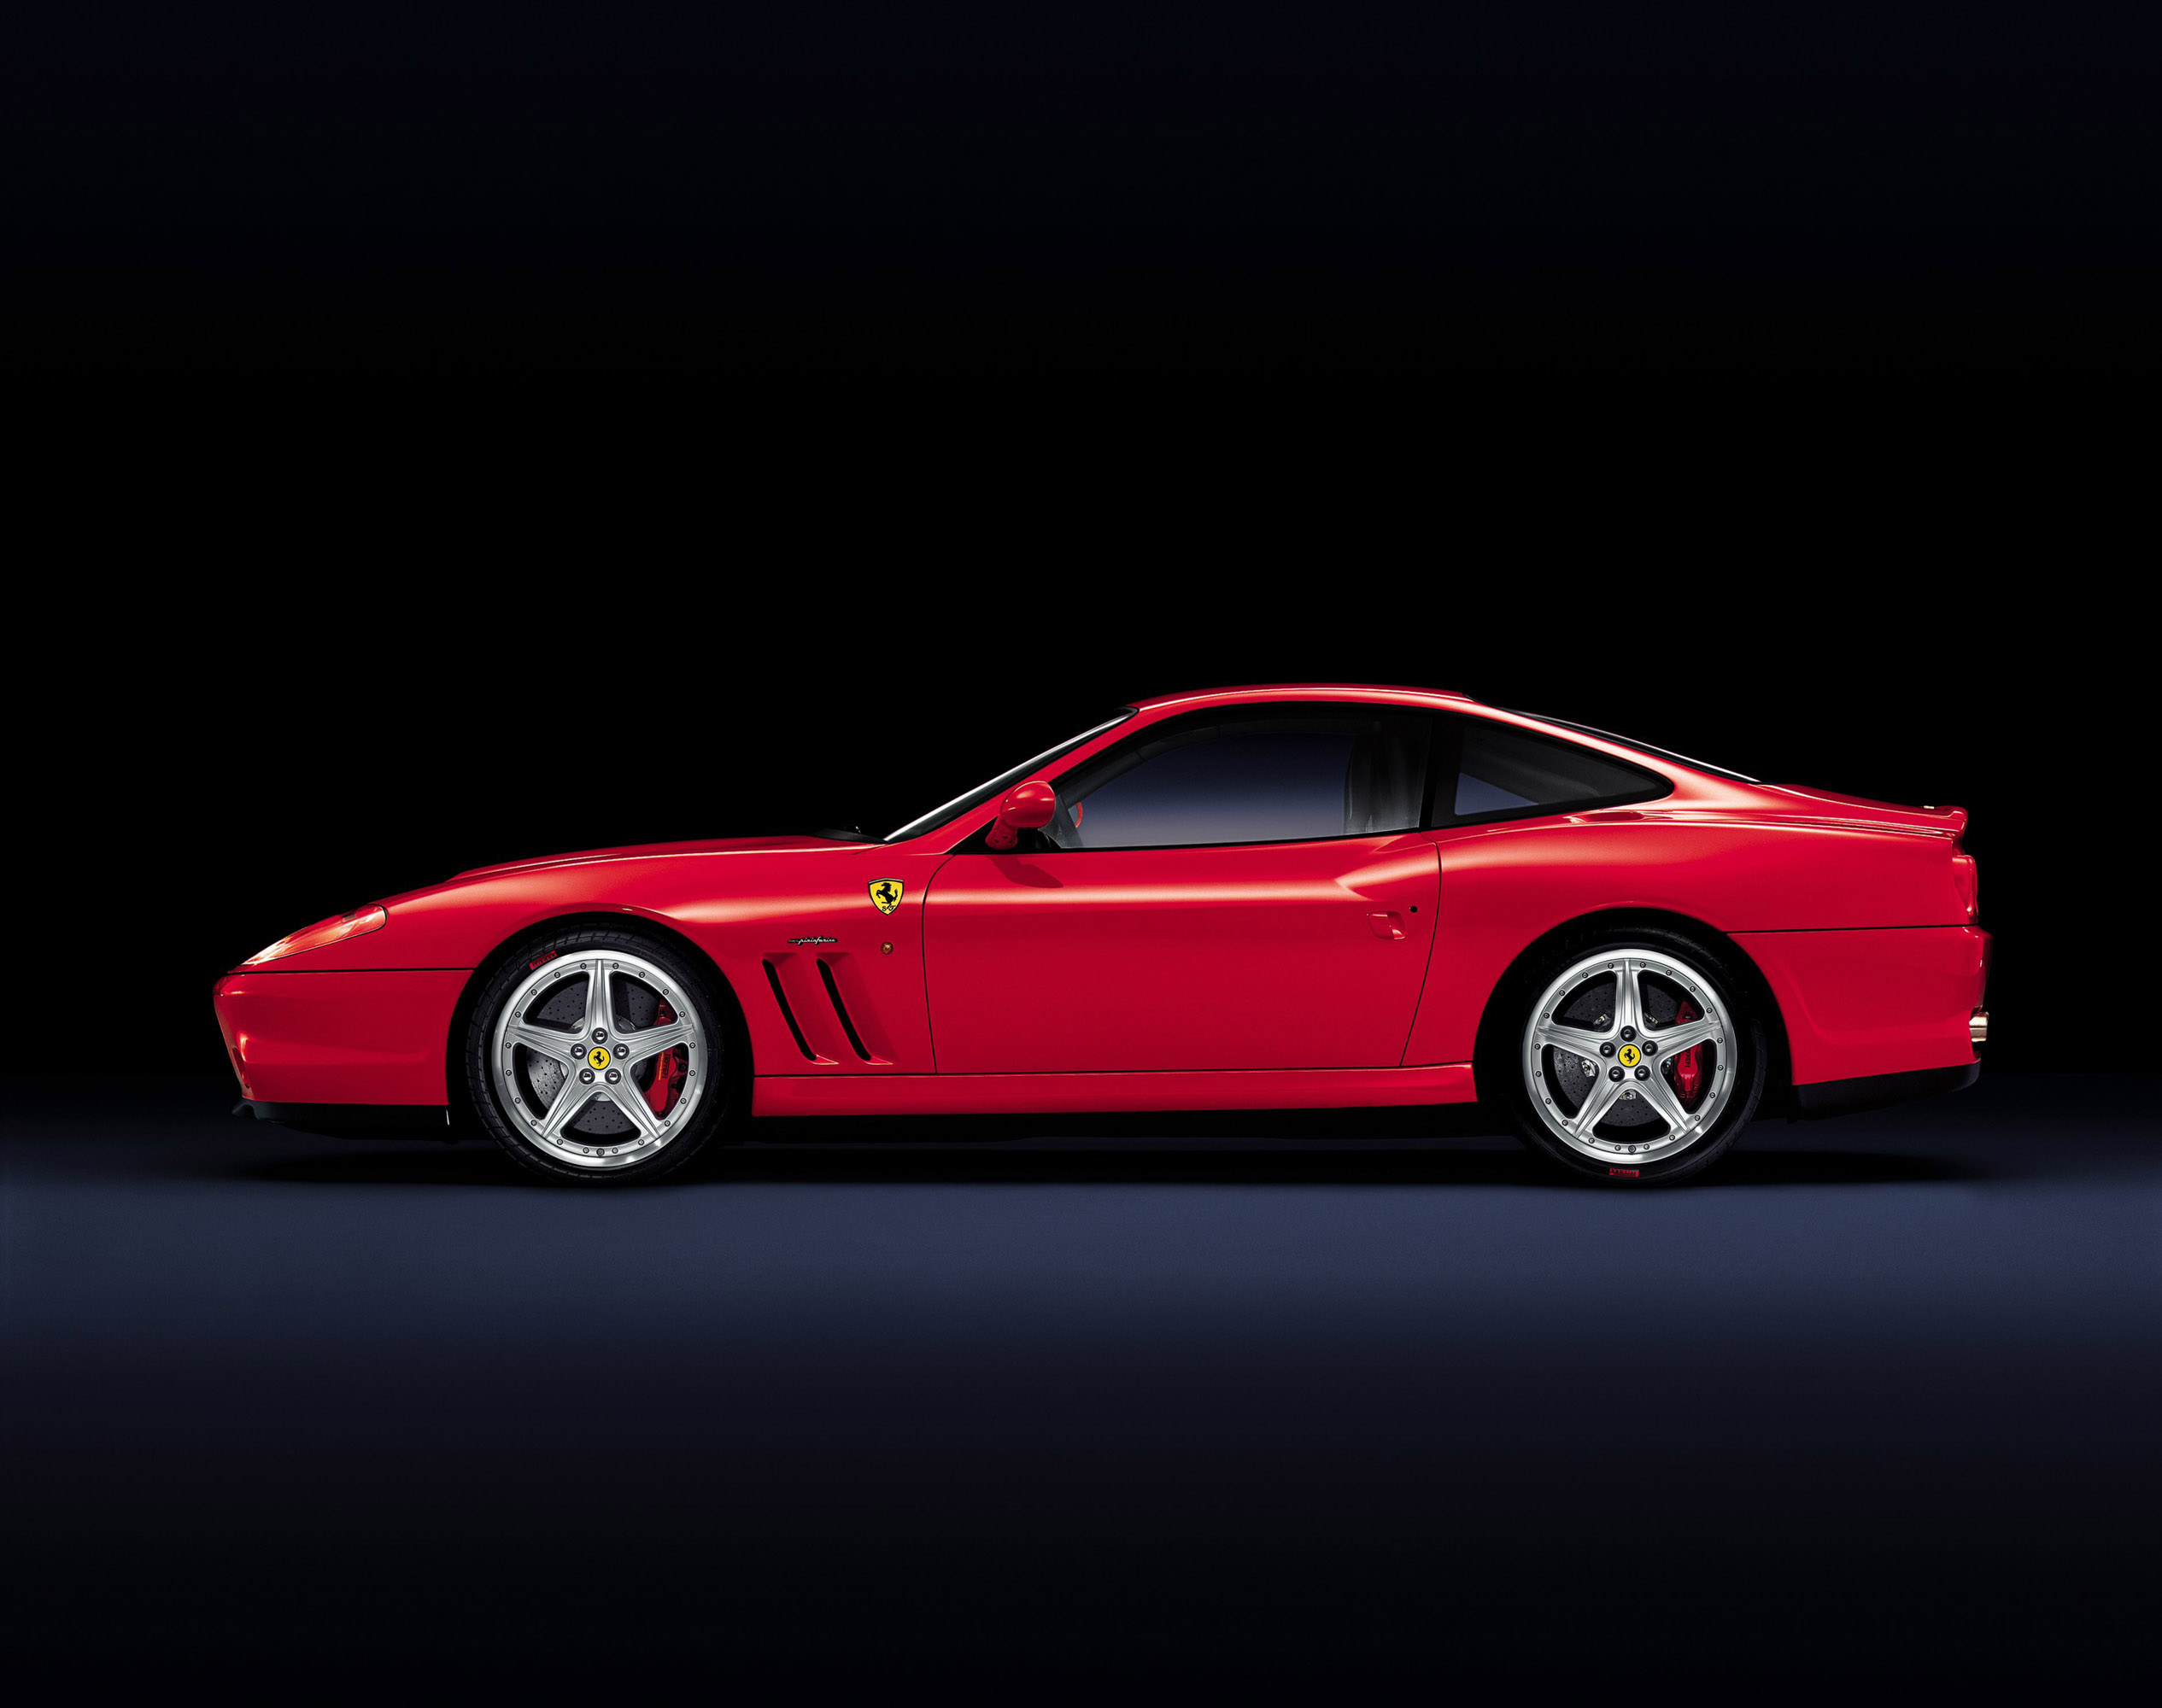 2004 Ferrari 575m With Handling Gtc Pack Picture 39641